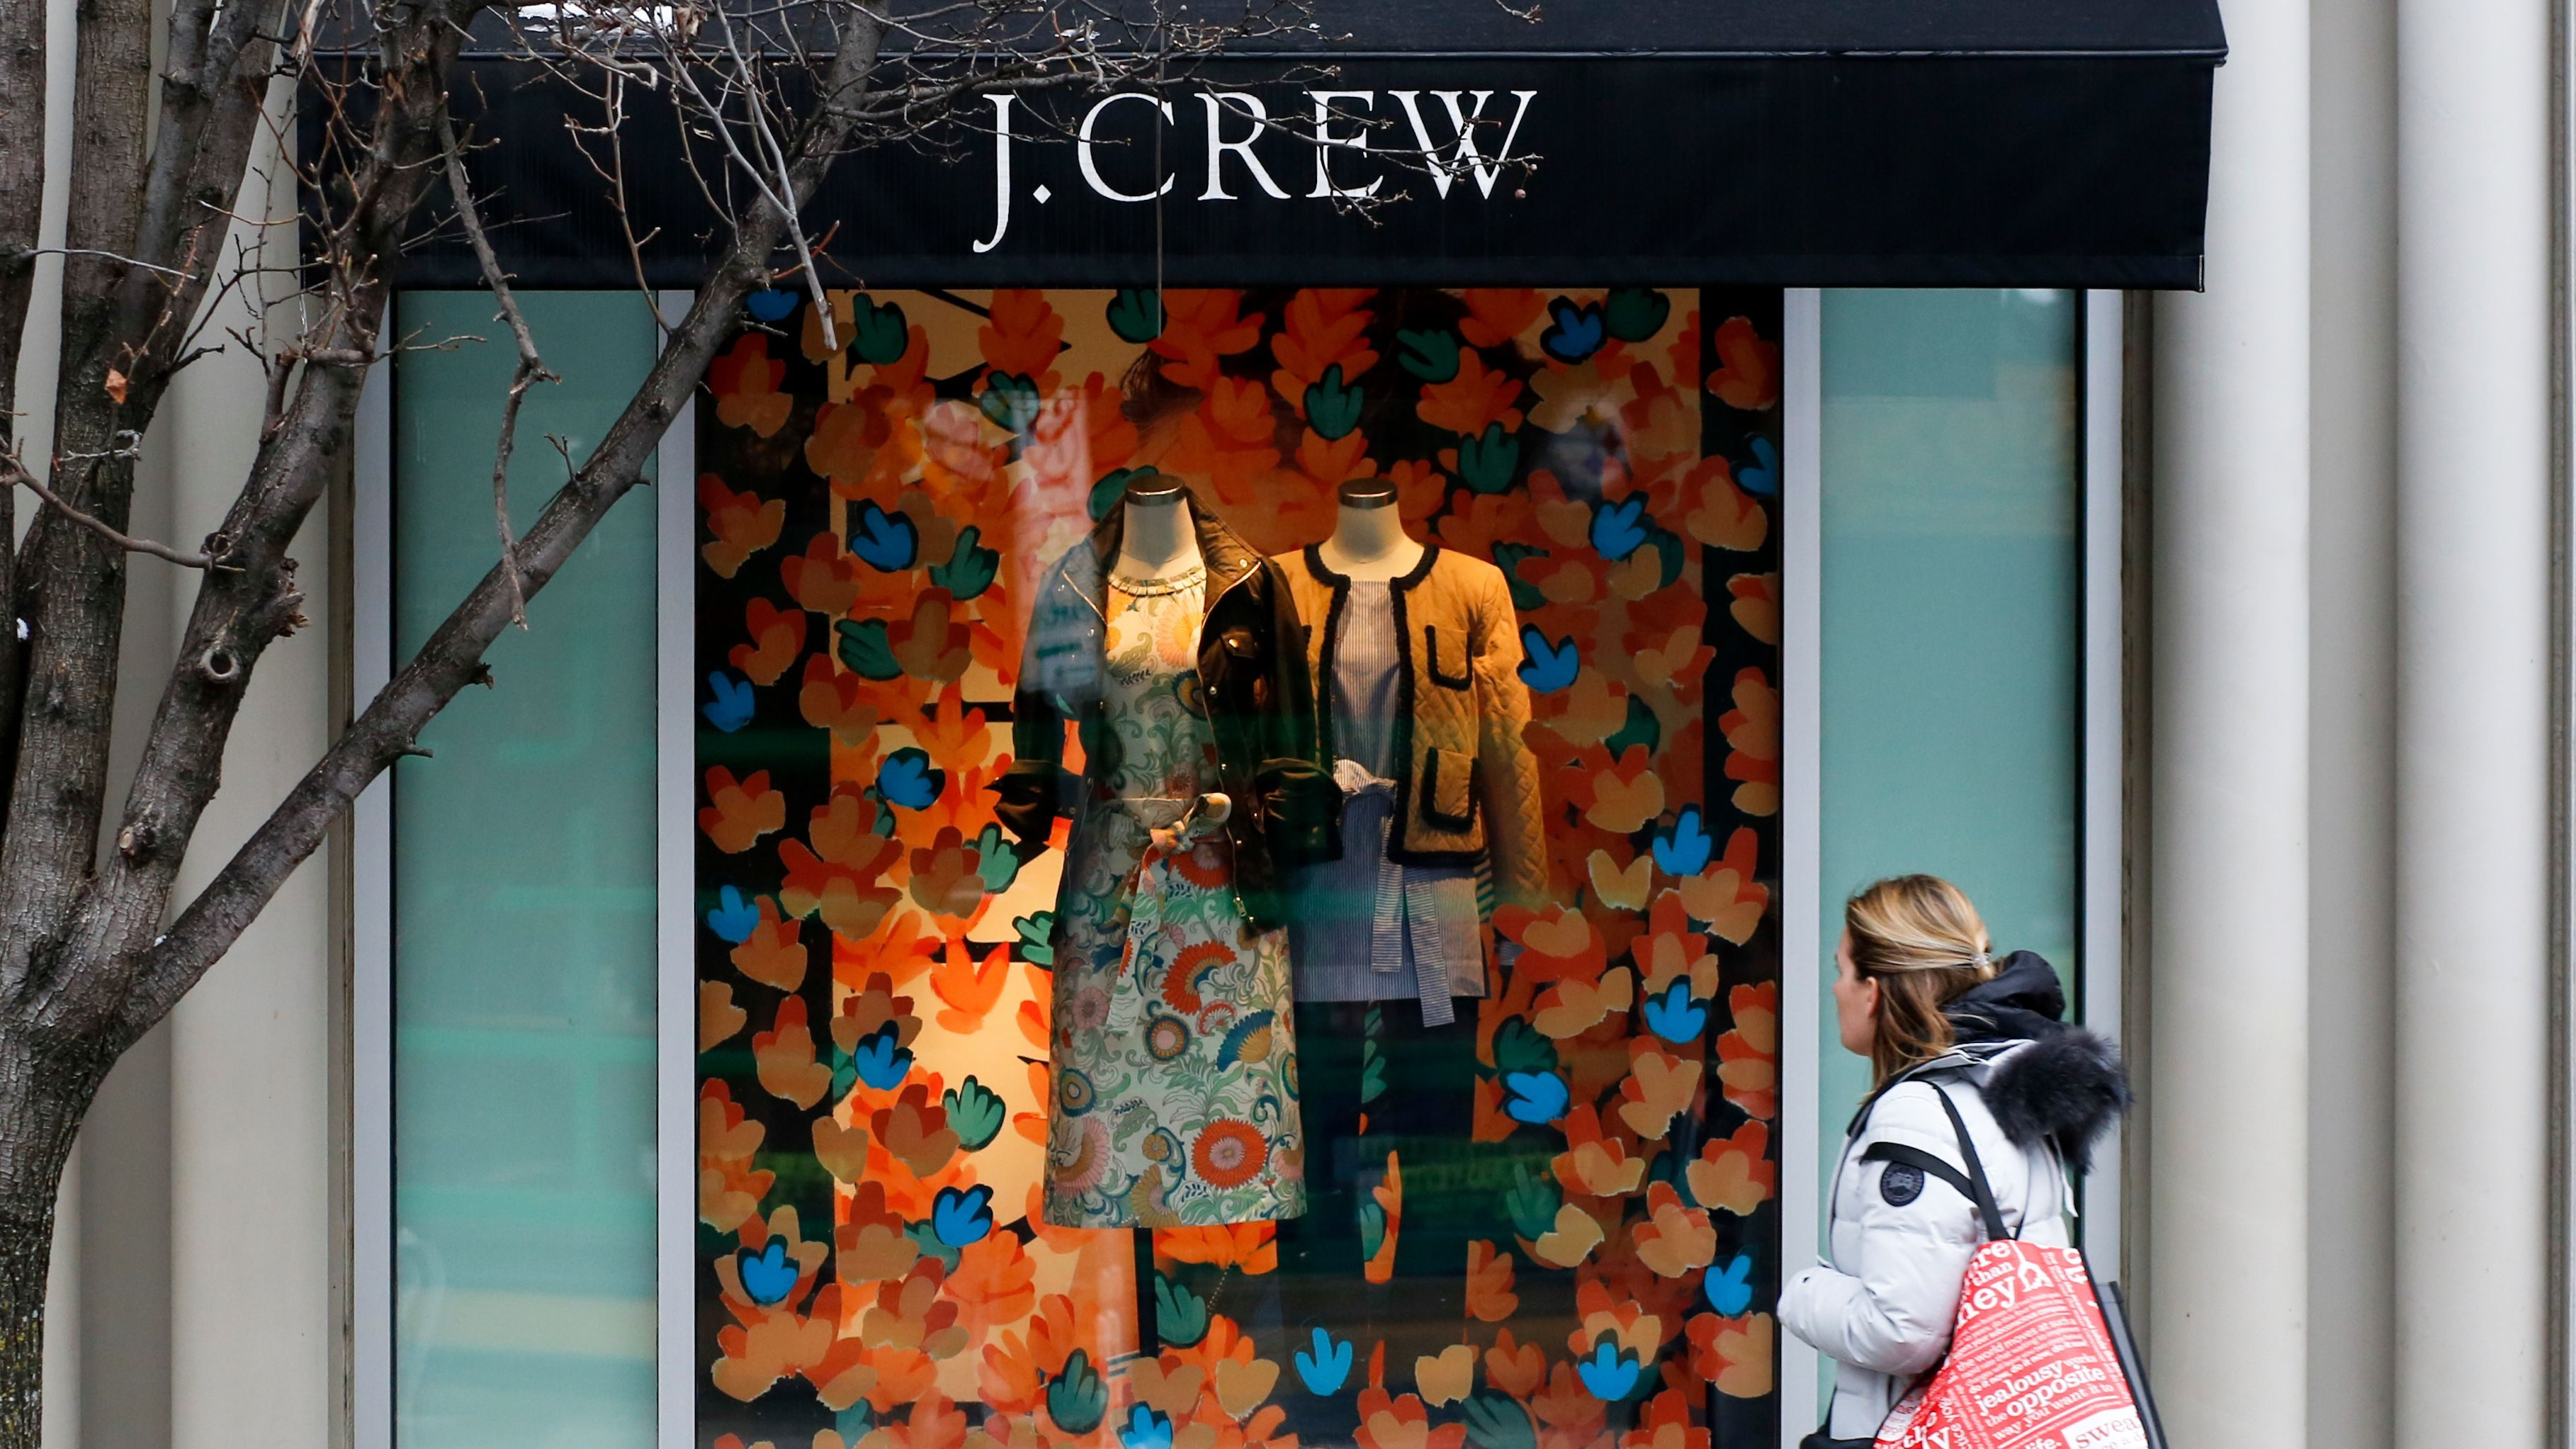 In this Friday, Feb. 10, 2017, photo, a shopper passes a display in the window of a J. Crew store in the Shadyside shopping district of Pittsburgh. On Wednesday, March 15, 2017, the Commerce Department releases U.S. retail sales data for February. (AP Photo/Gene J. Puskar)